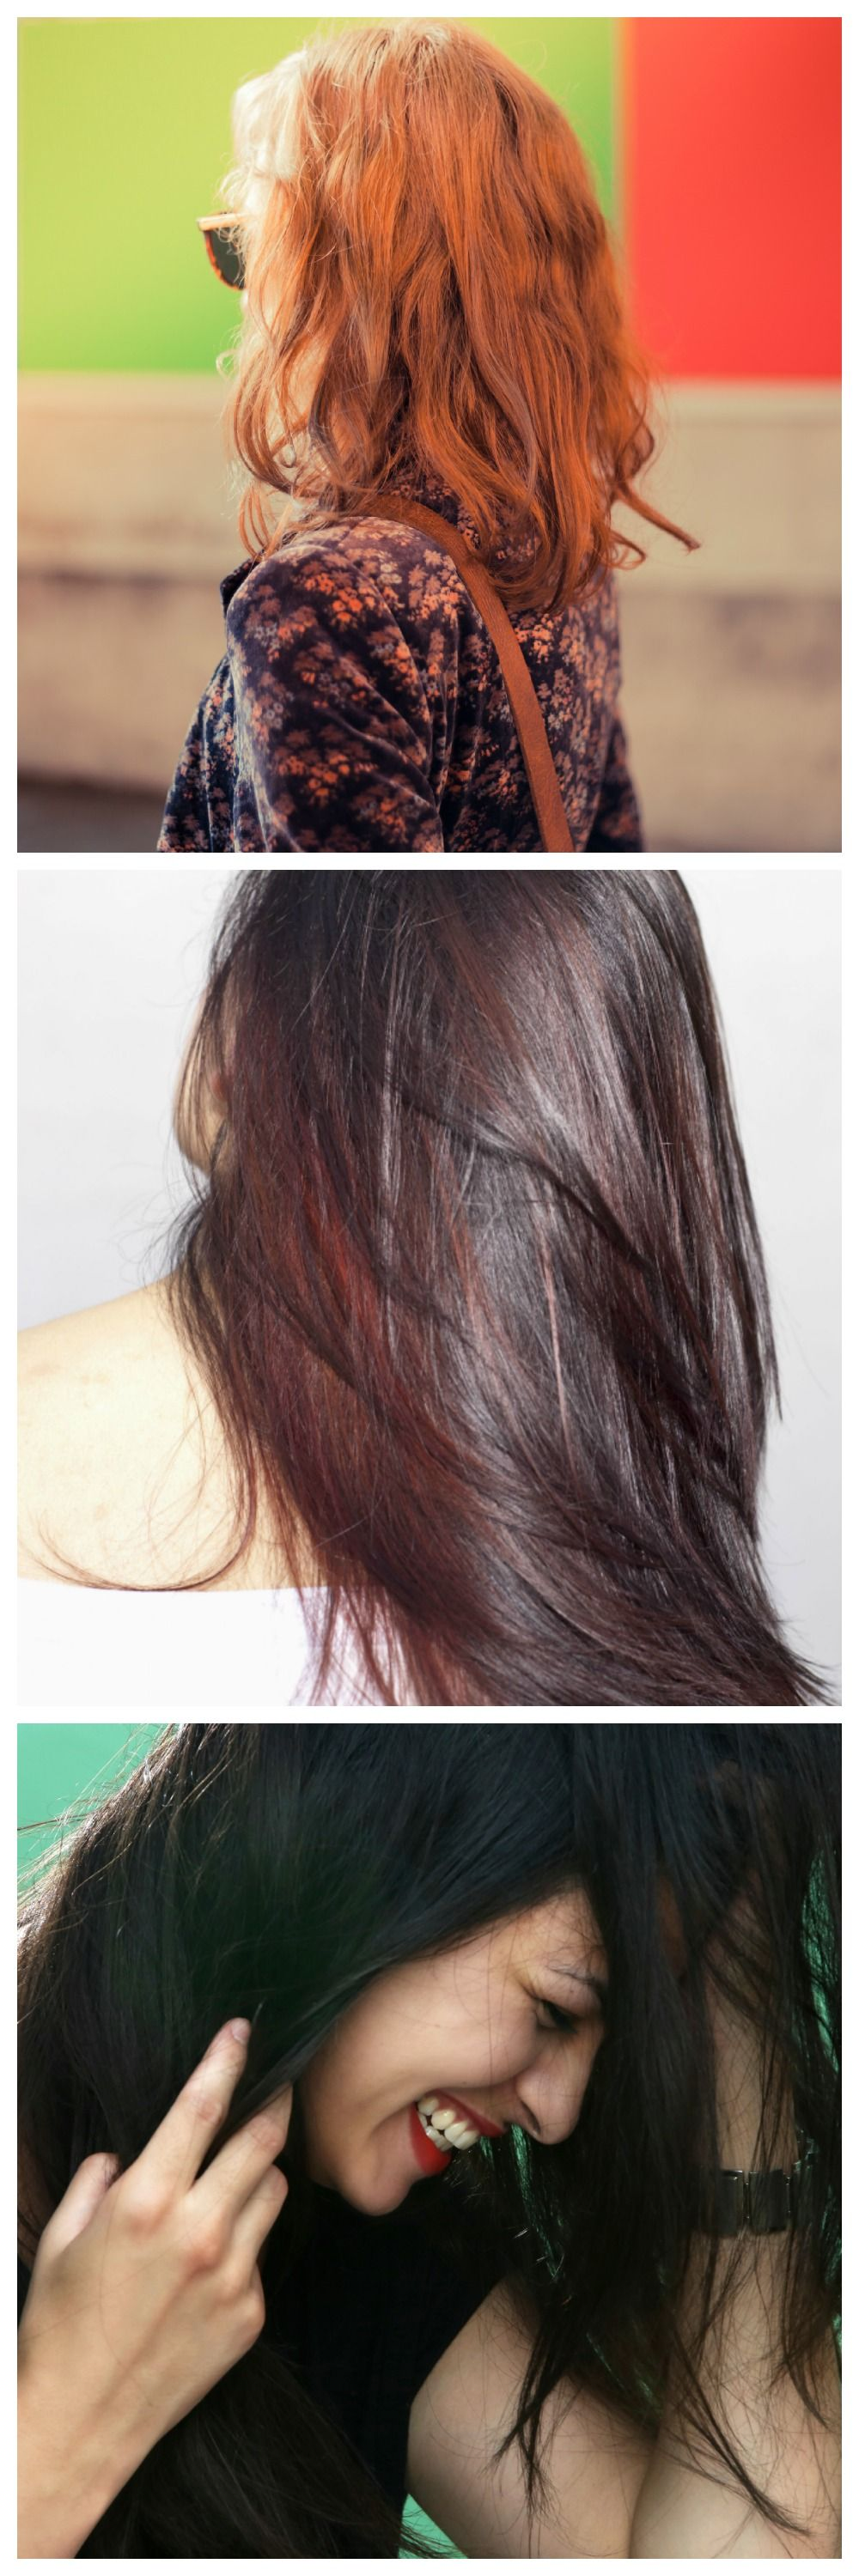 Looking to get vibrant hair color on a budget esalon has developed looking to get vibrant hair color on a budget esalon has developed a cost effective and professional solution for customized hair color delivered straight solutioingenieria Gallery